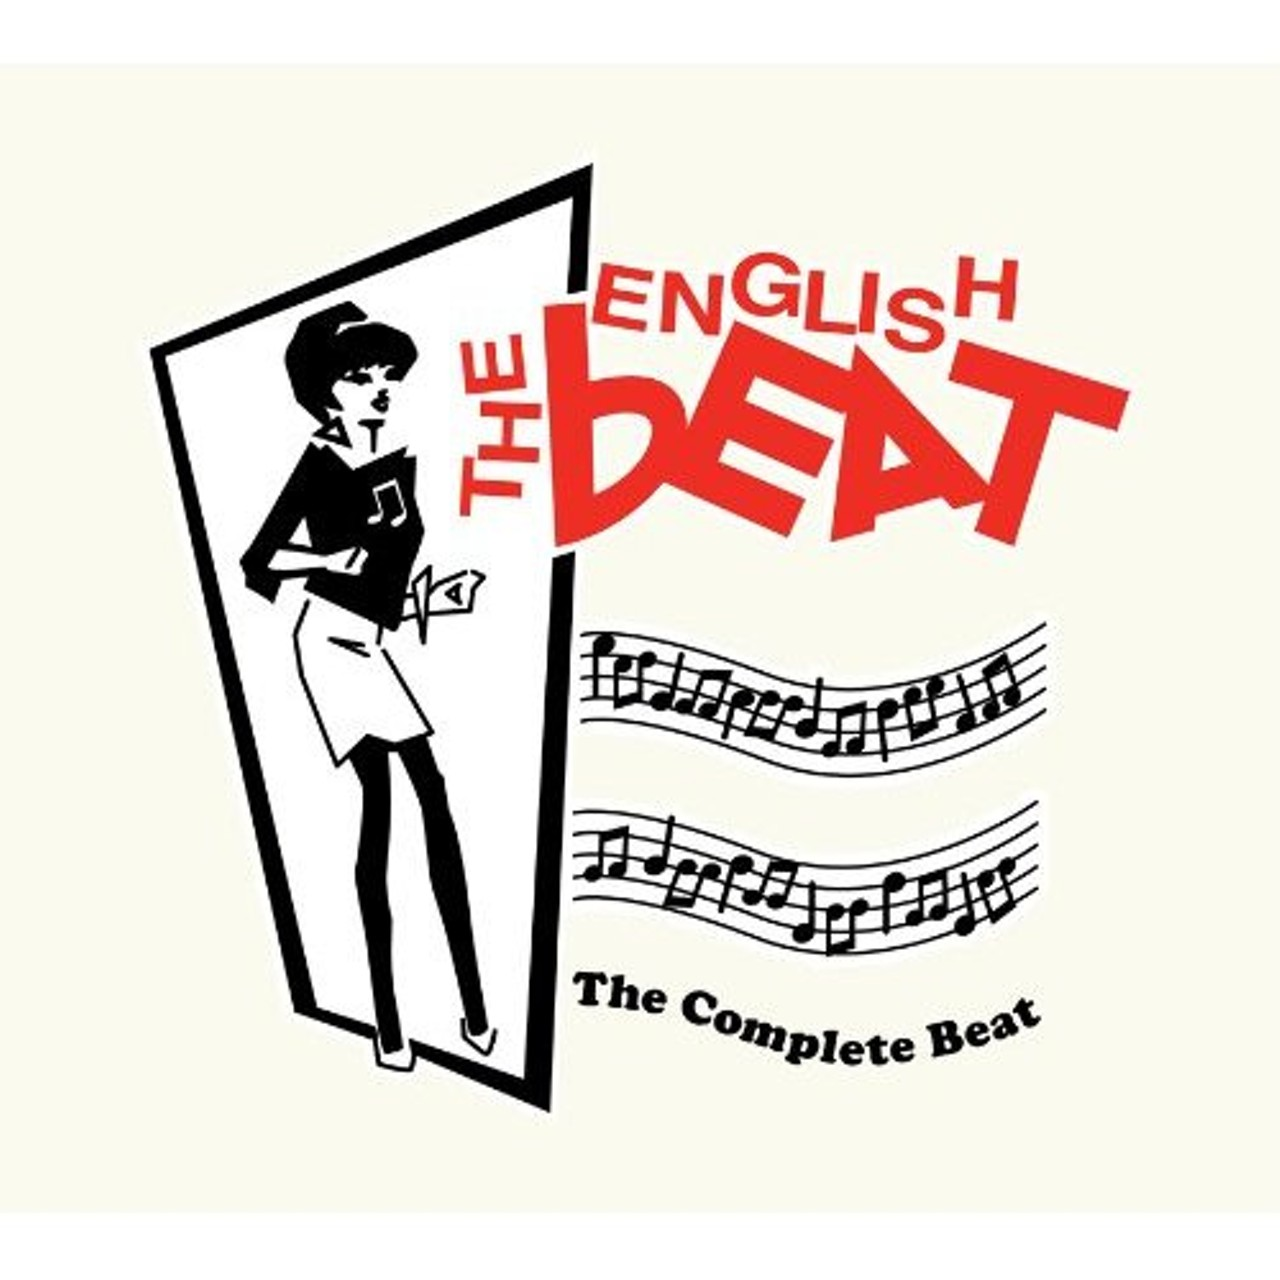 CD Review The English Beat  CD Reviews  Cleveland  Cleveland Scene